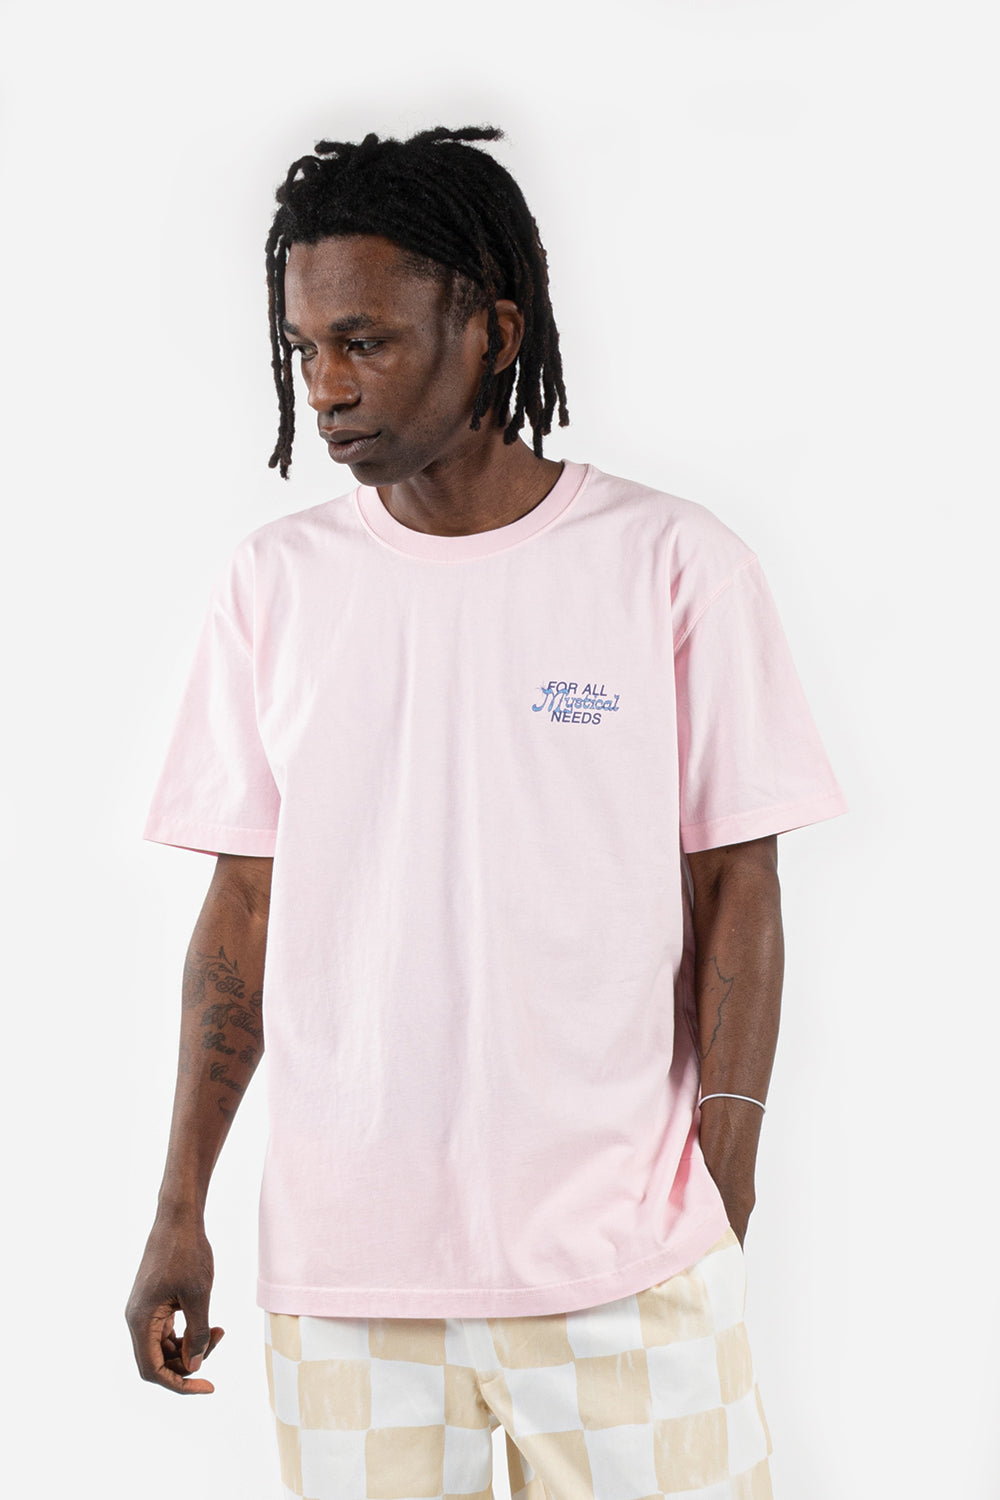 reception-clothing-ss-tee-slow-imports-pink